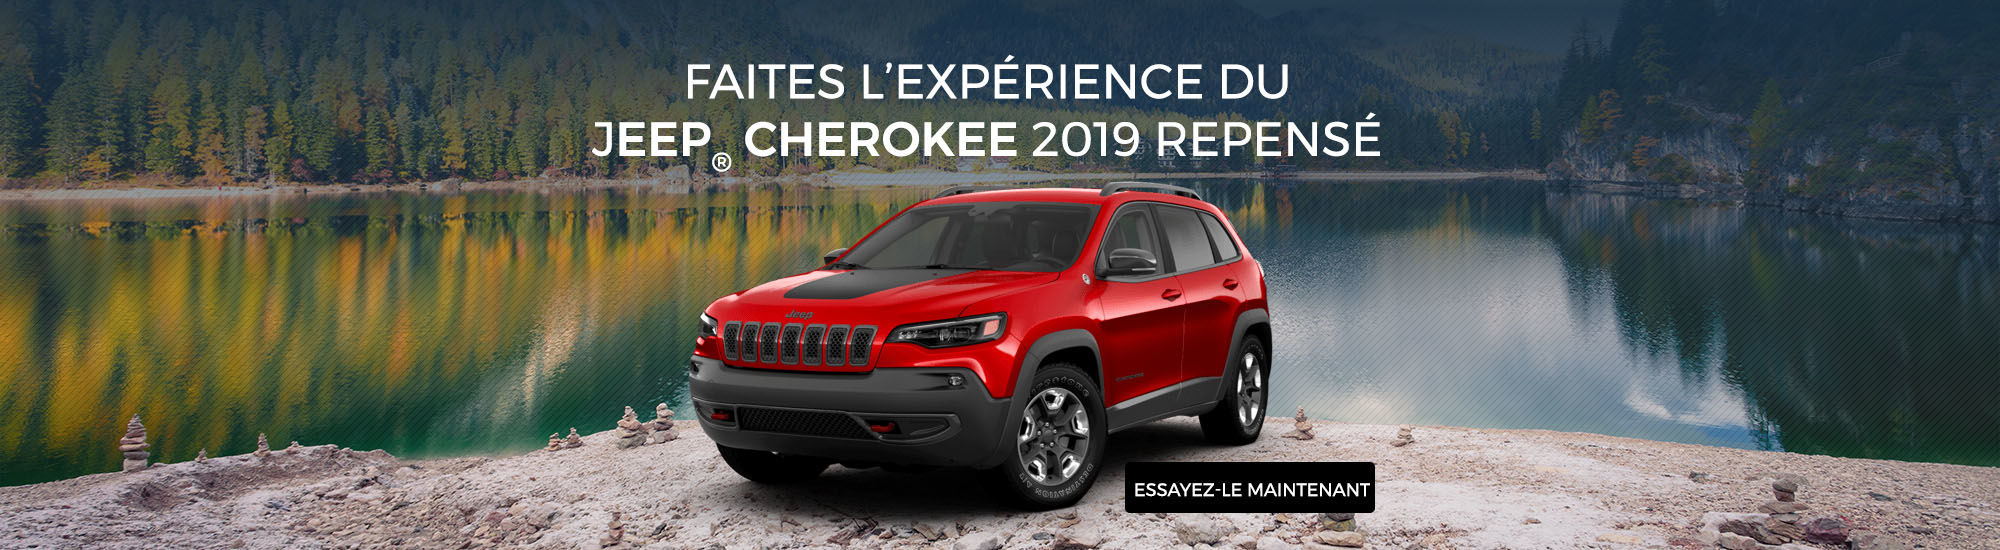 Jeep Cherokee 2019 repensé